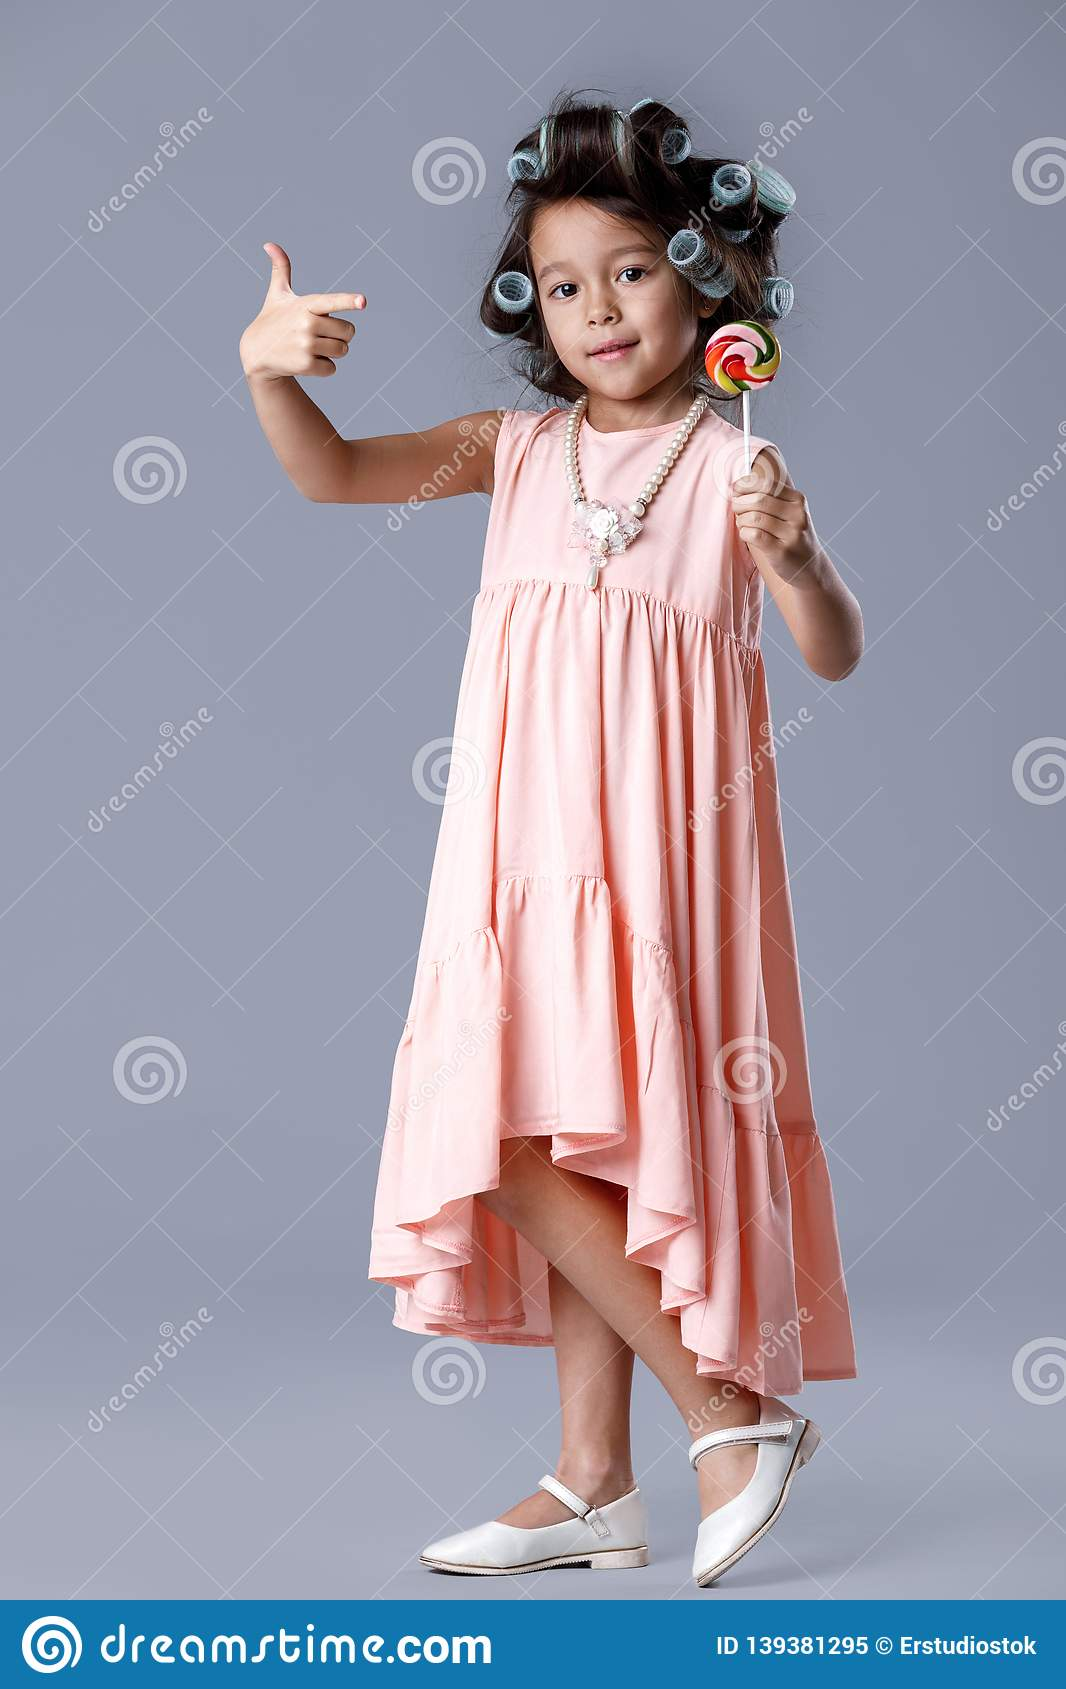 8a5bd9b55 Funny little child girl in pink dress and hair curlers pointing lollipop on  gray background.